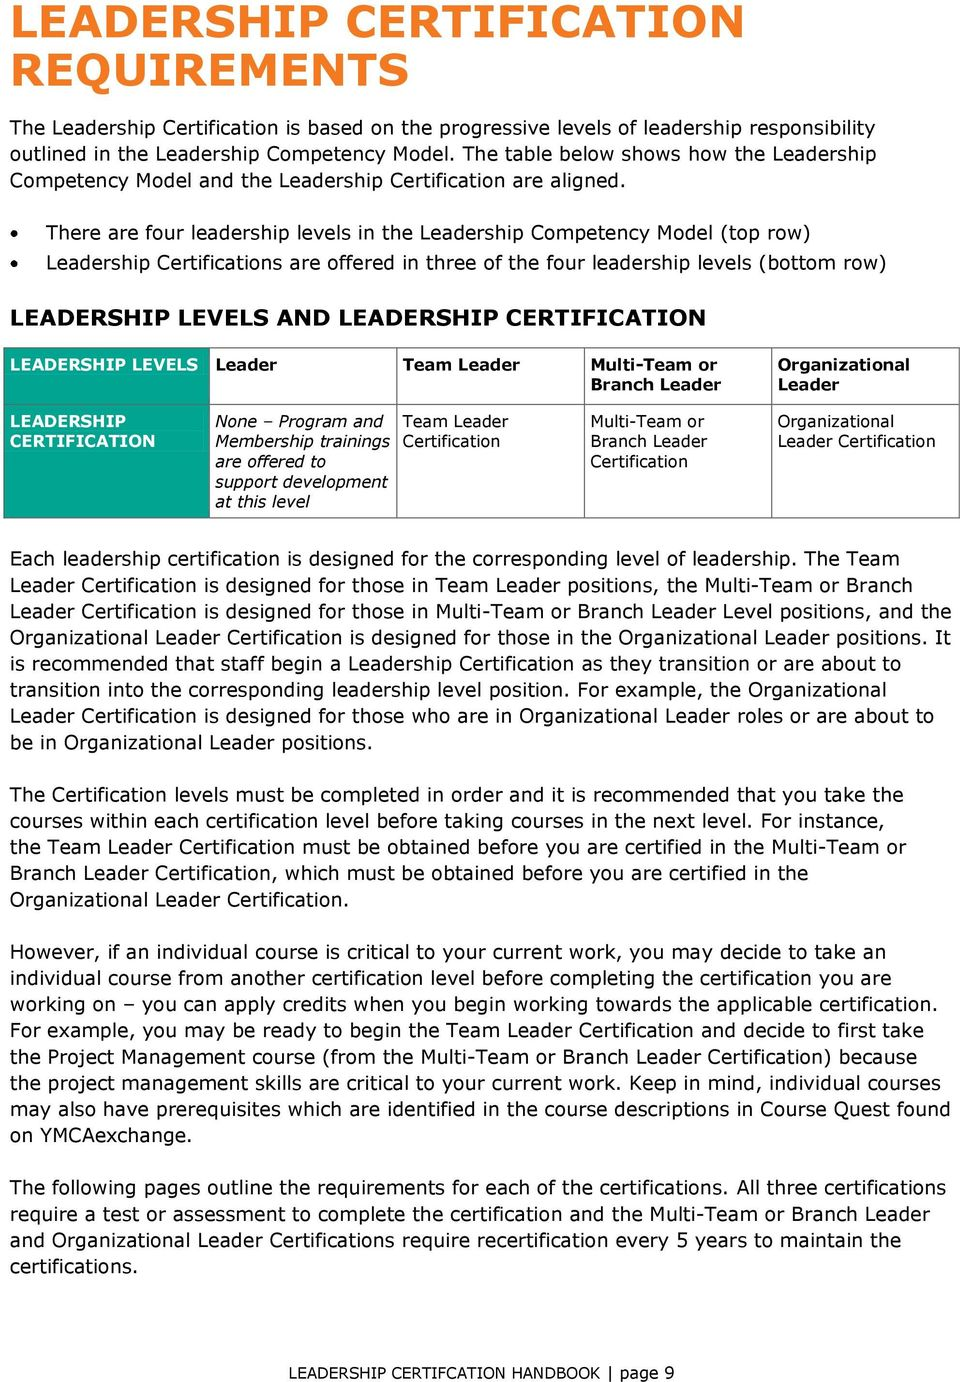 Certifying Cause Driven Leaders Leadership Certification Handbook Pdf